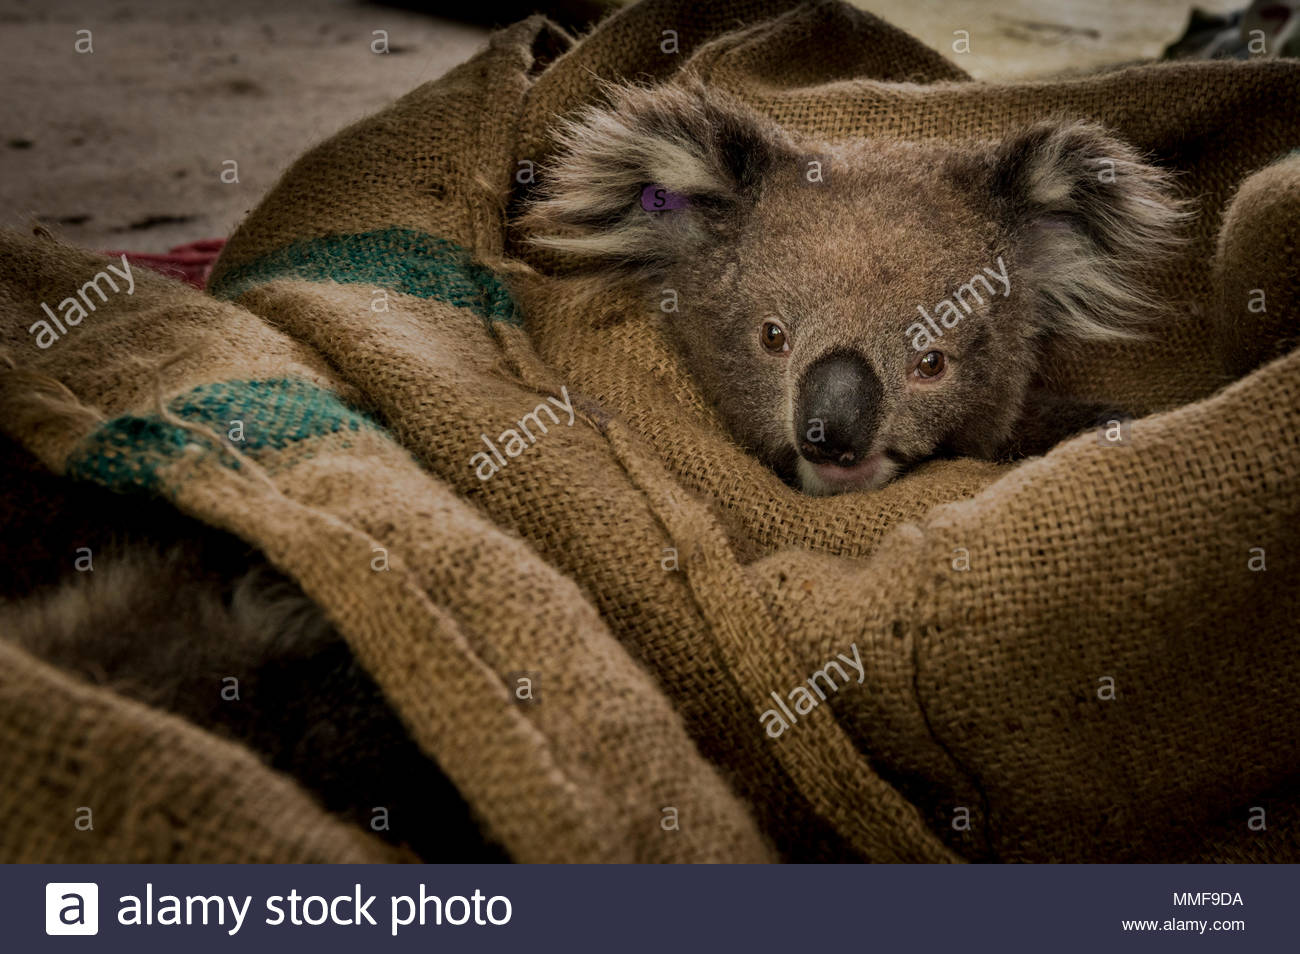 A koala, Phascolarctos cinereus, is kept warm in a hessian sack after receiving a health check. - Stock Image